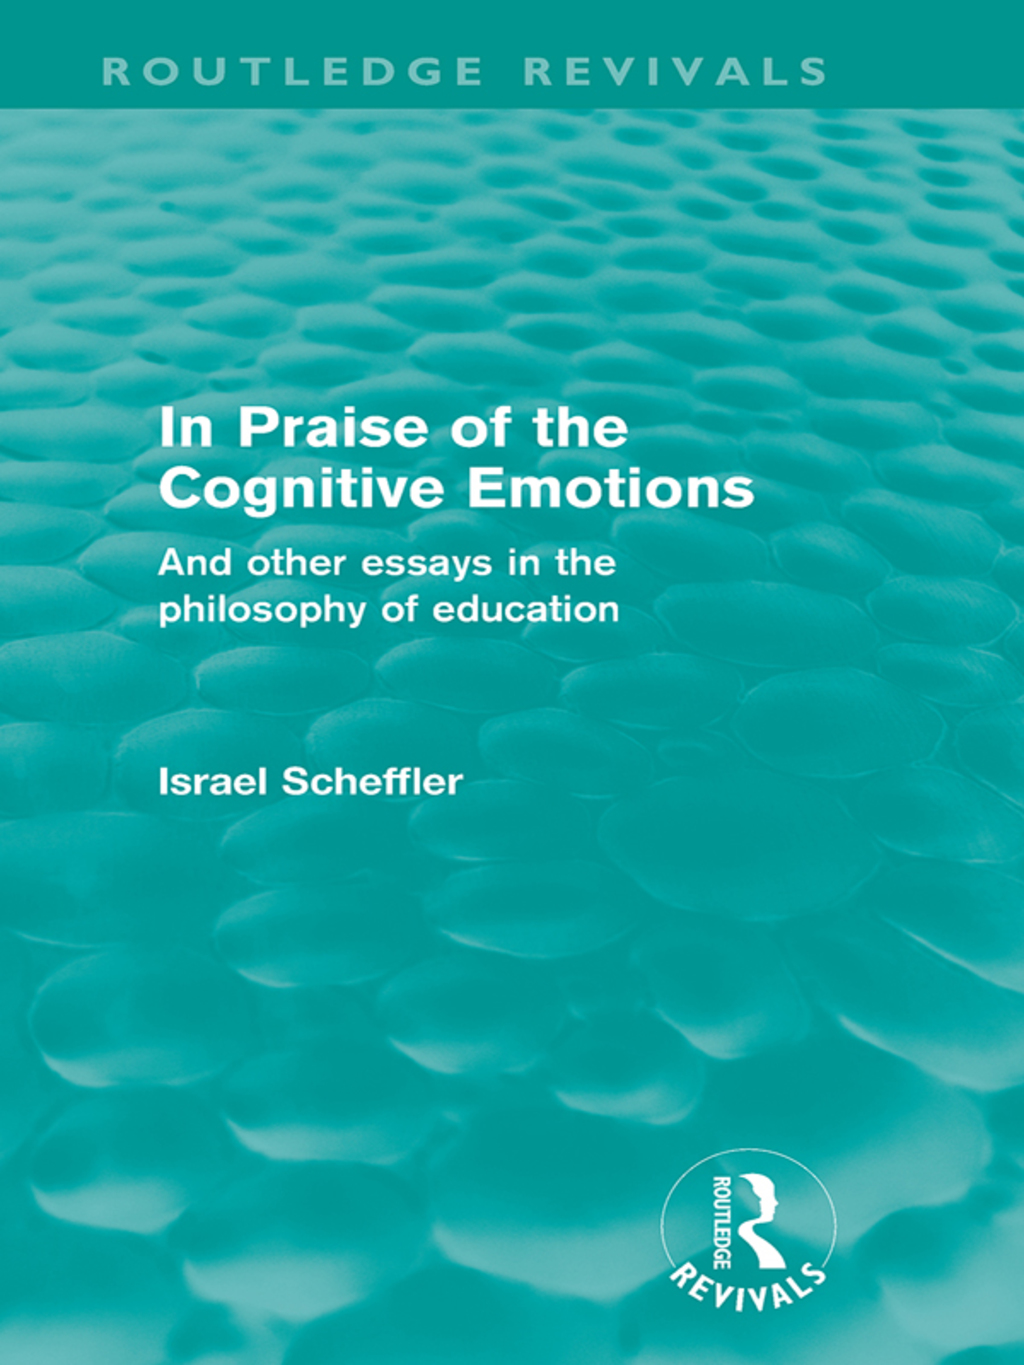 In Praise of the Cognitive Emotions (Routledge Revivals) (ebook) eBooks